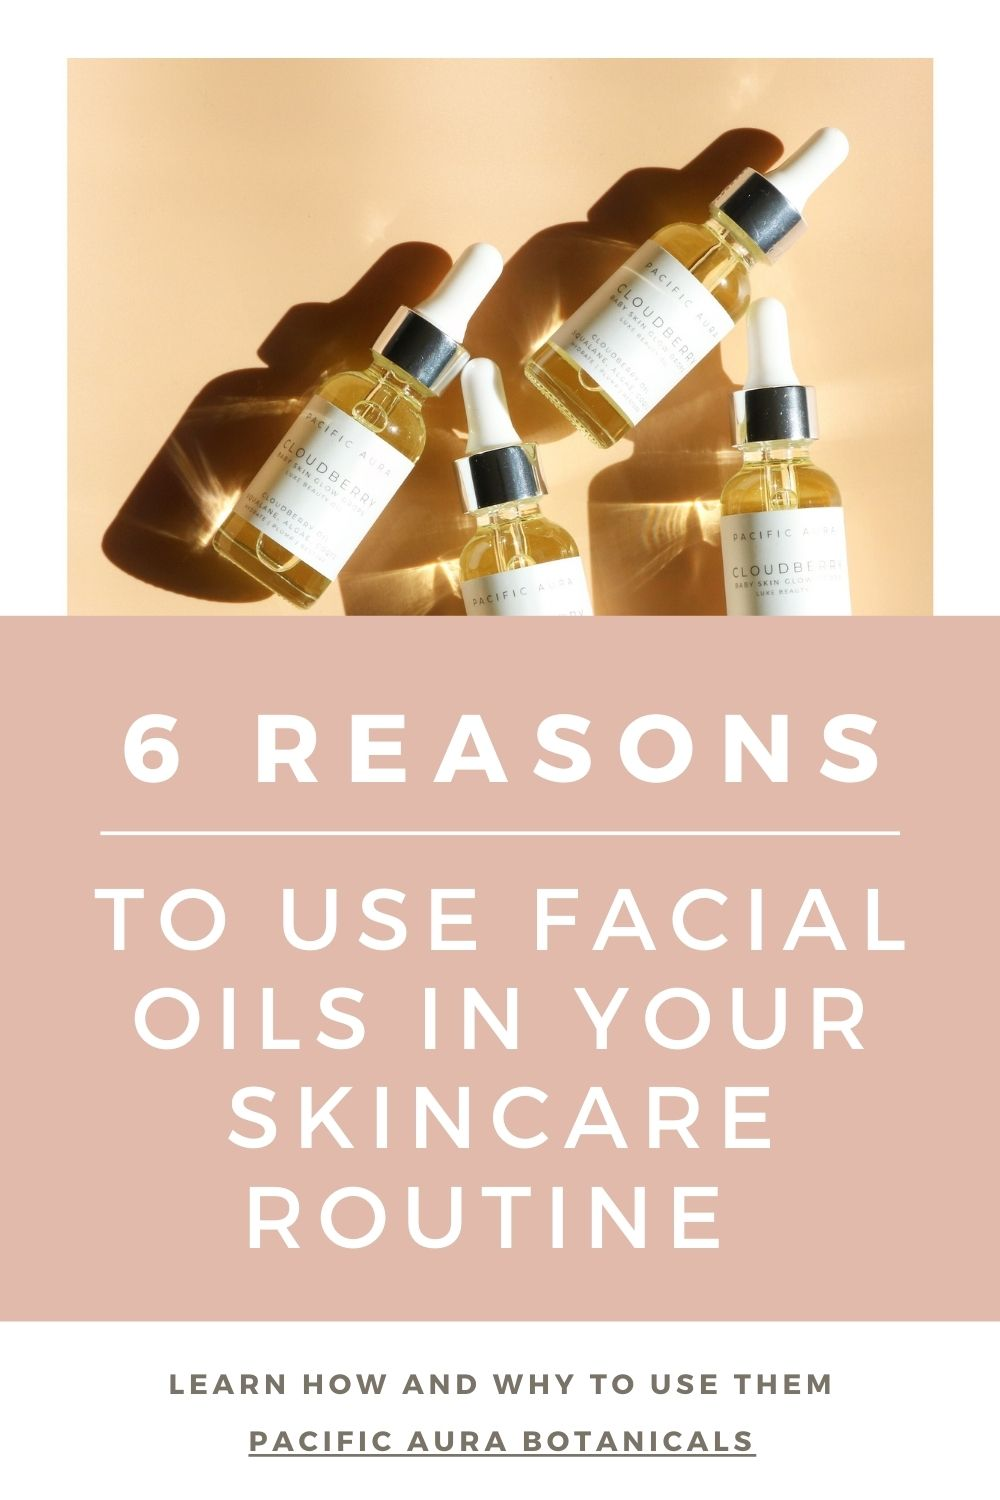 6 reasosn to use facial oils in skincare routine